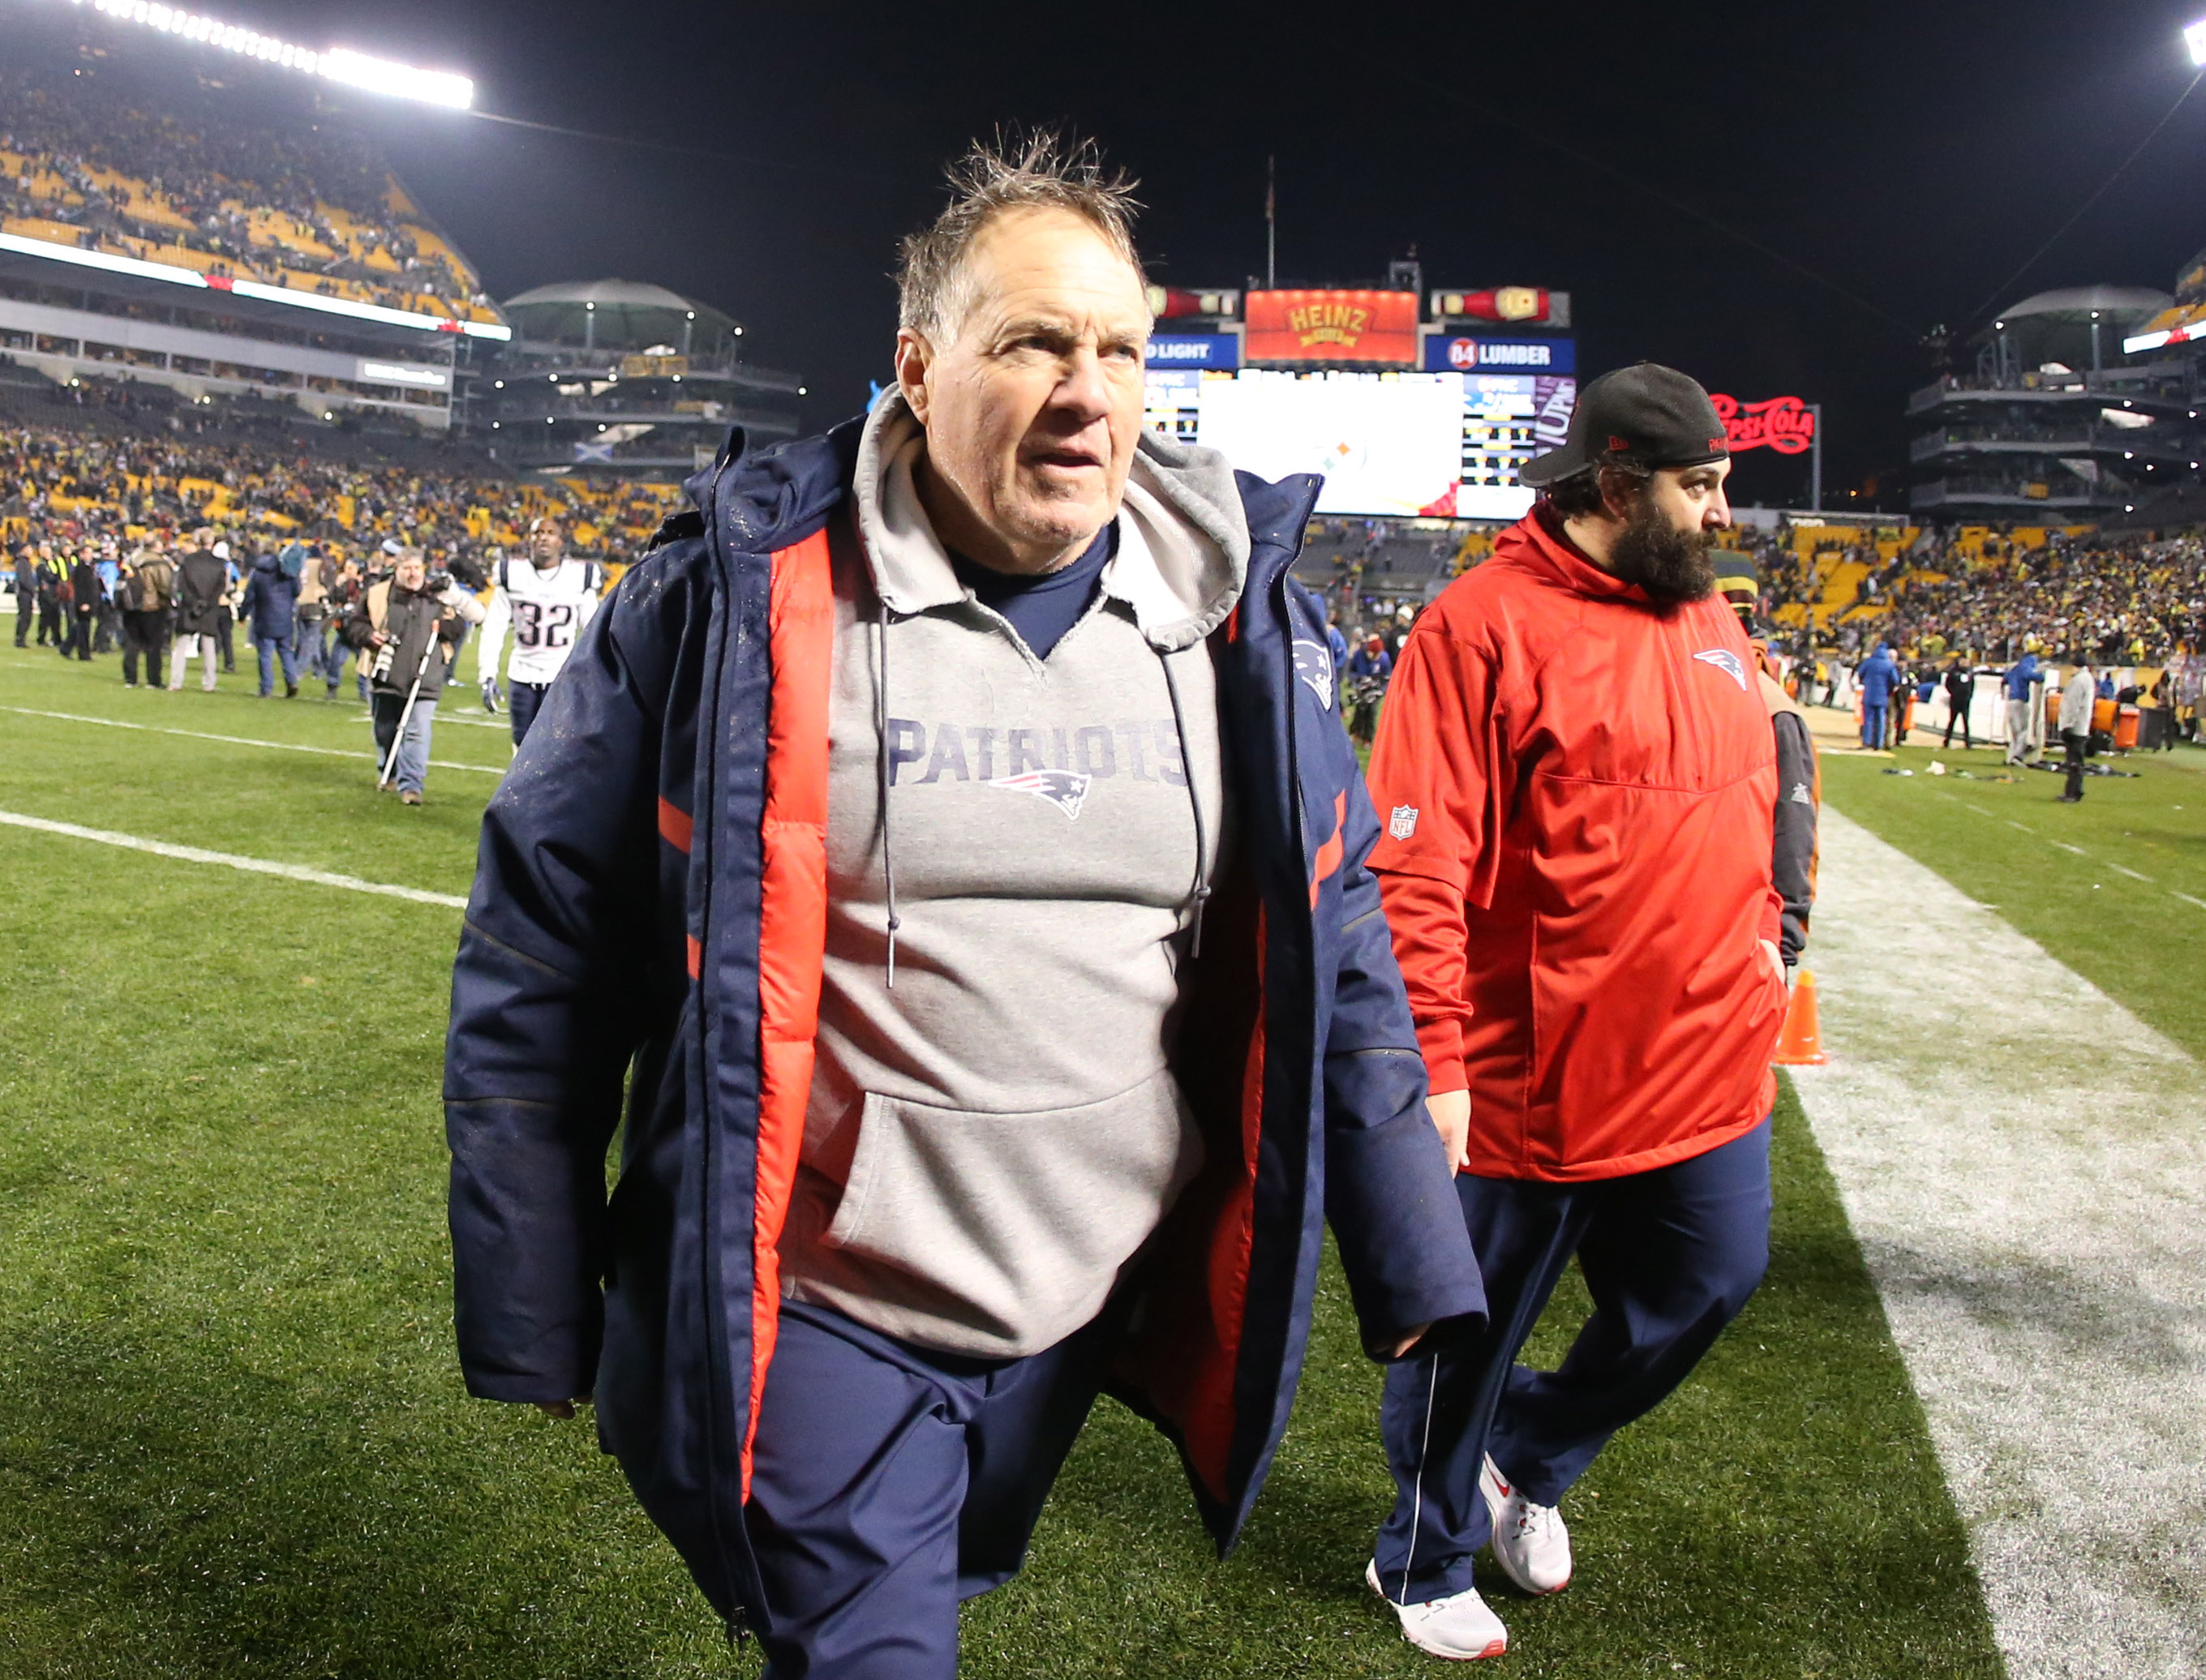 TGS: Patriots Vs Guerrero, Hunter Henry and Aaron Rodgers To IR